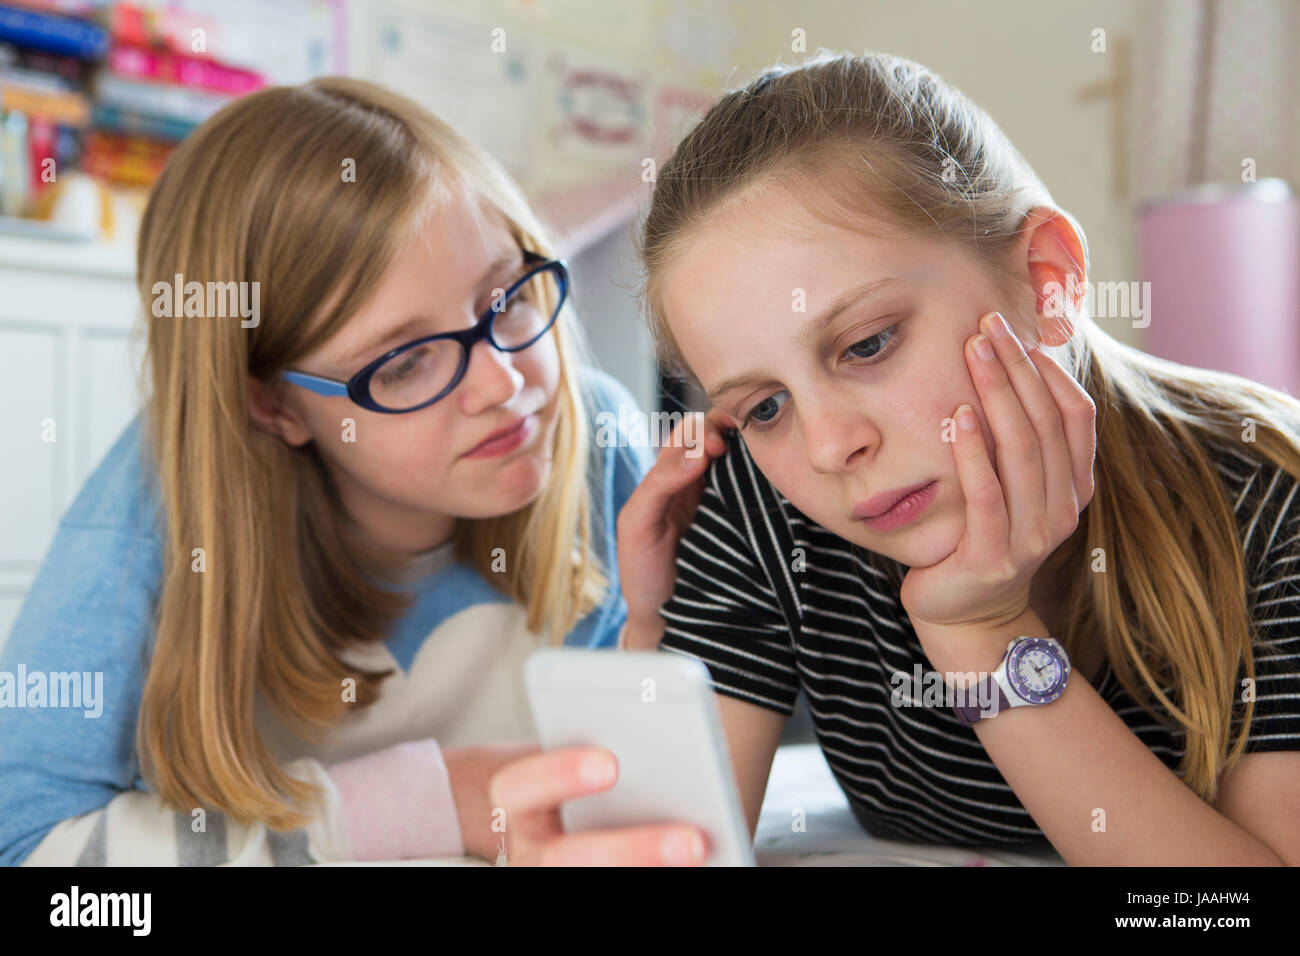 Pre Teen Girl With Friend Being Bullied By Text Message - Stock Image